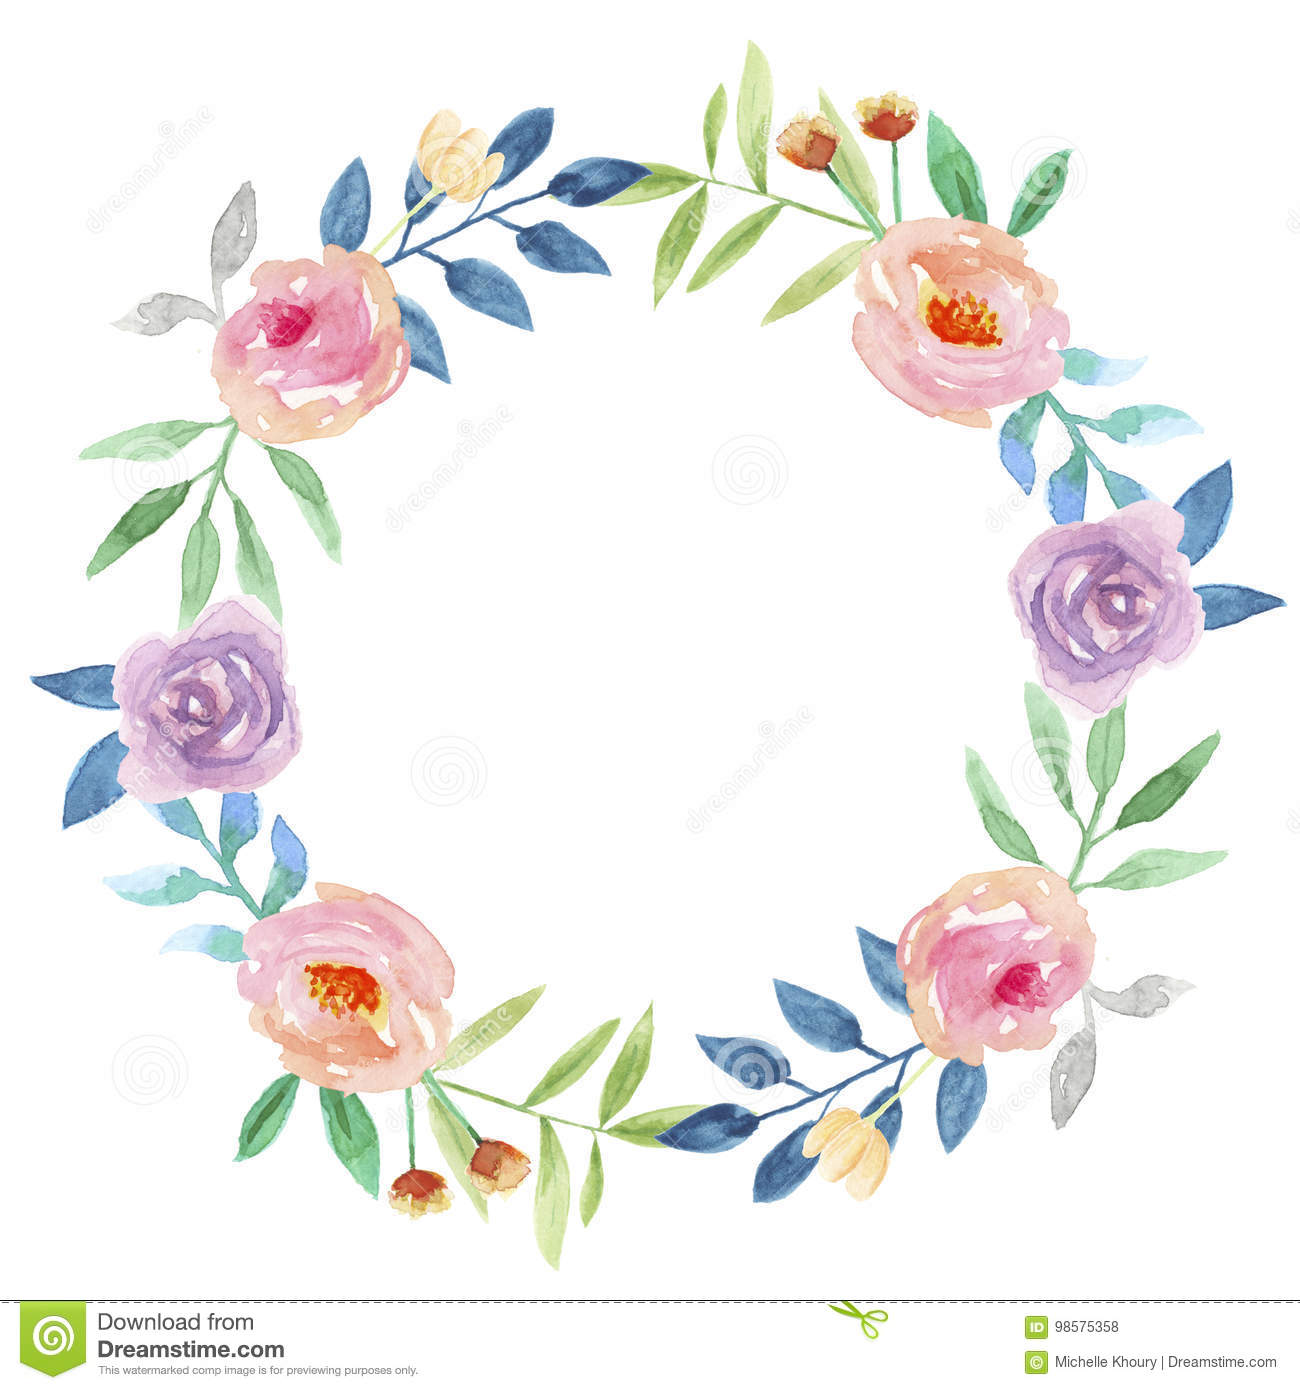 Watercolor Flower Hand Blue Painted Garland Delicate Pink Purple Summer Floral Wreath Stock Illustration Illustration Of Floral Autumn 98575358